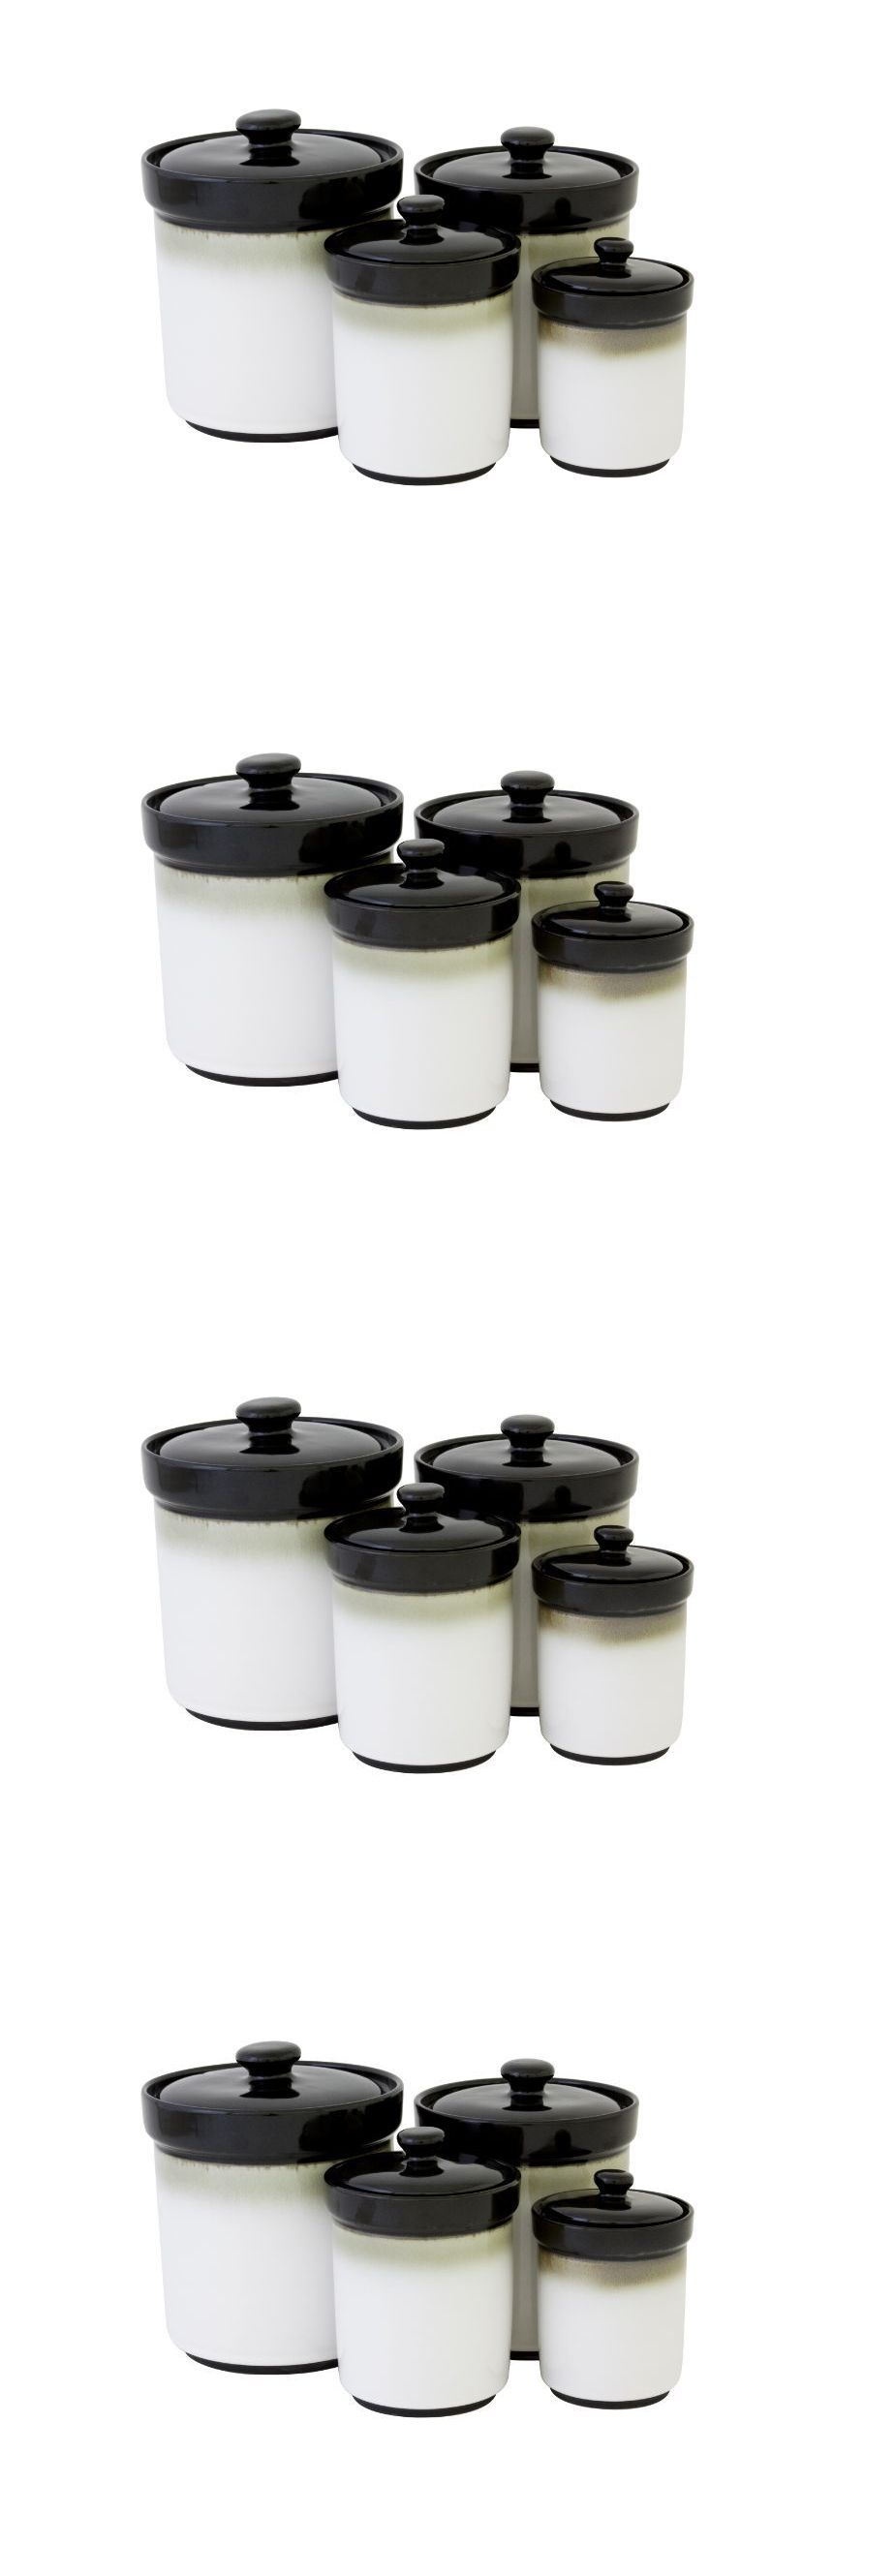 canisters and jars 20654 canisters sets for the kitchen coffee canisters and jars 20654 canisters sets for the kitchen coffee tea sugar flour white and